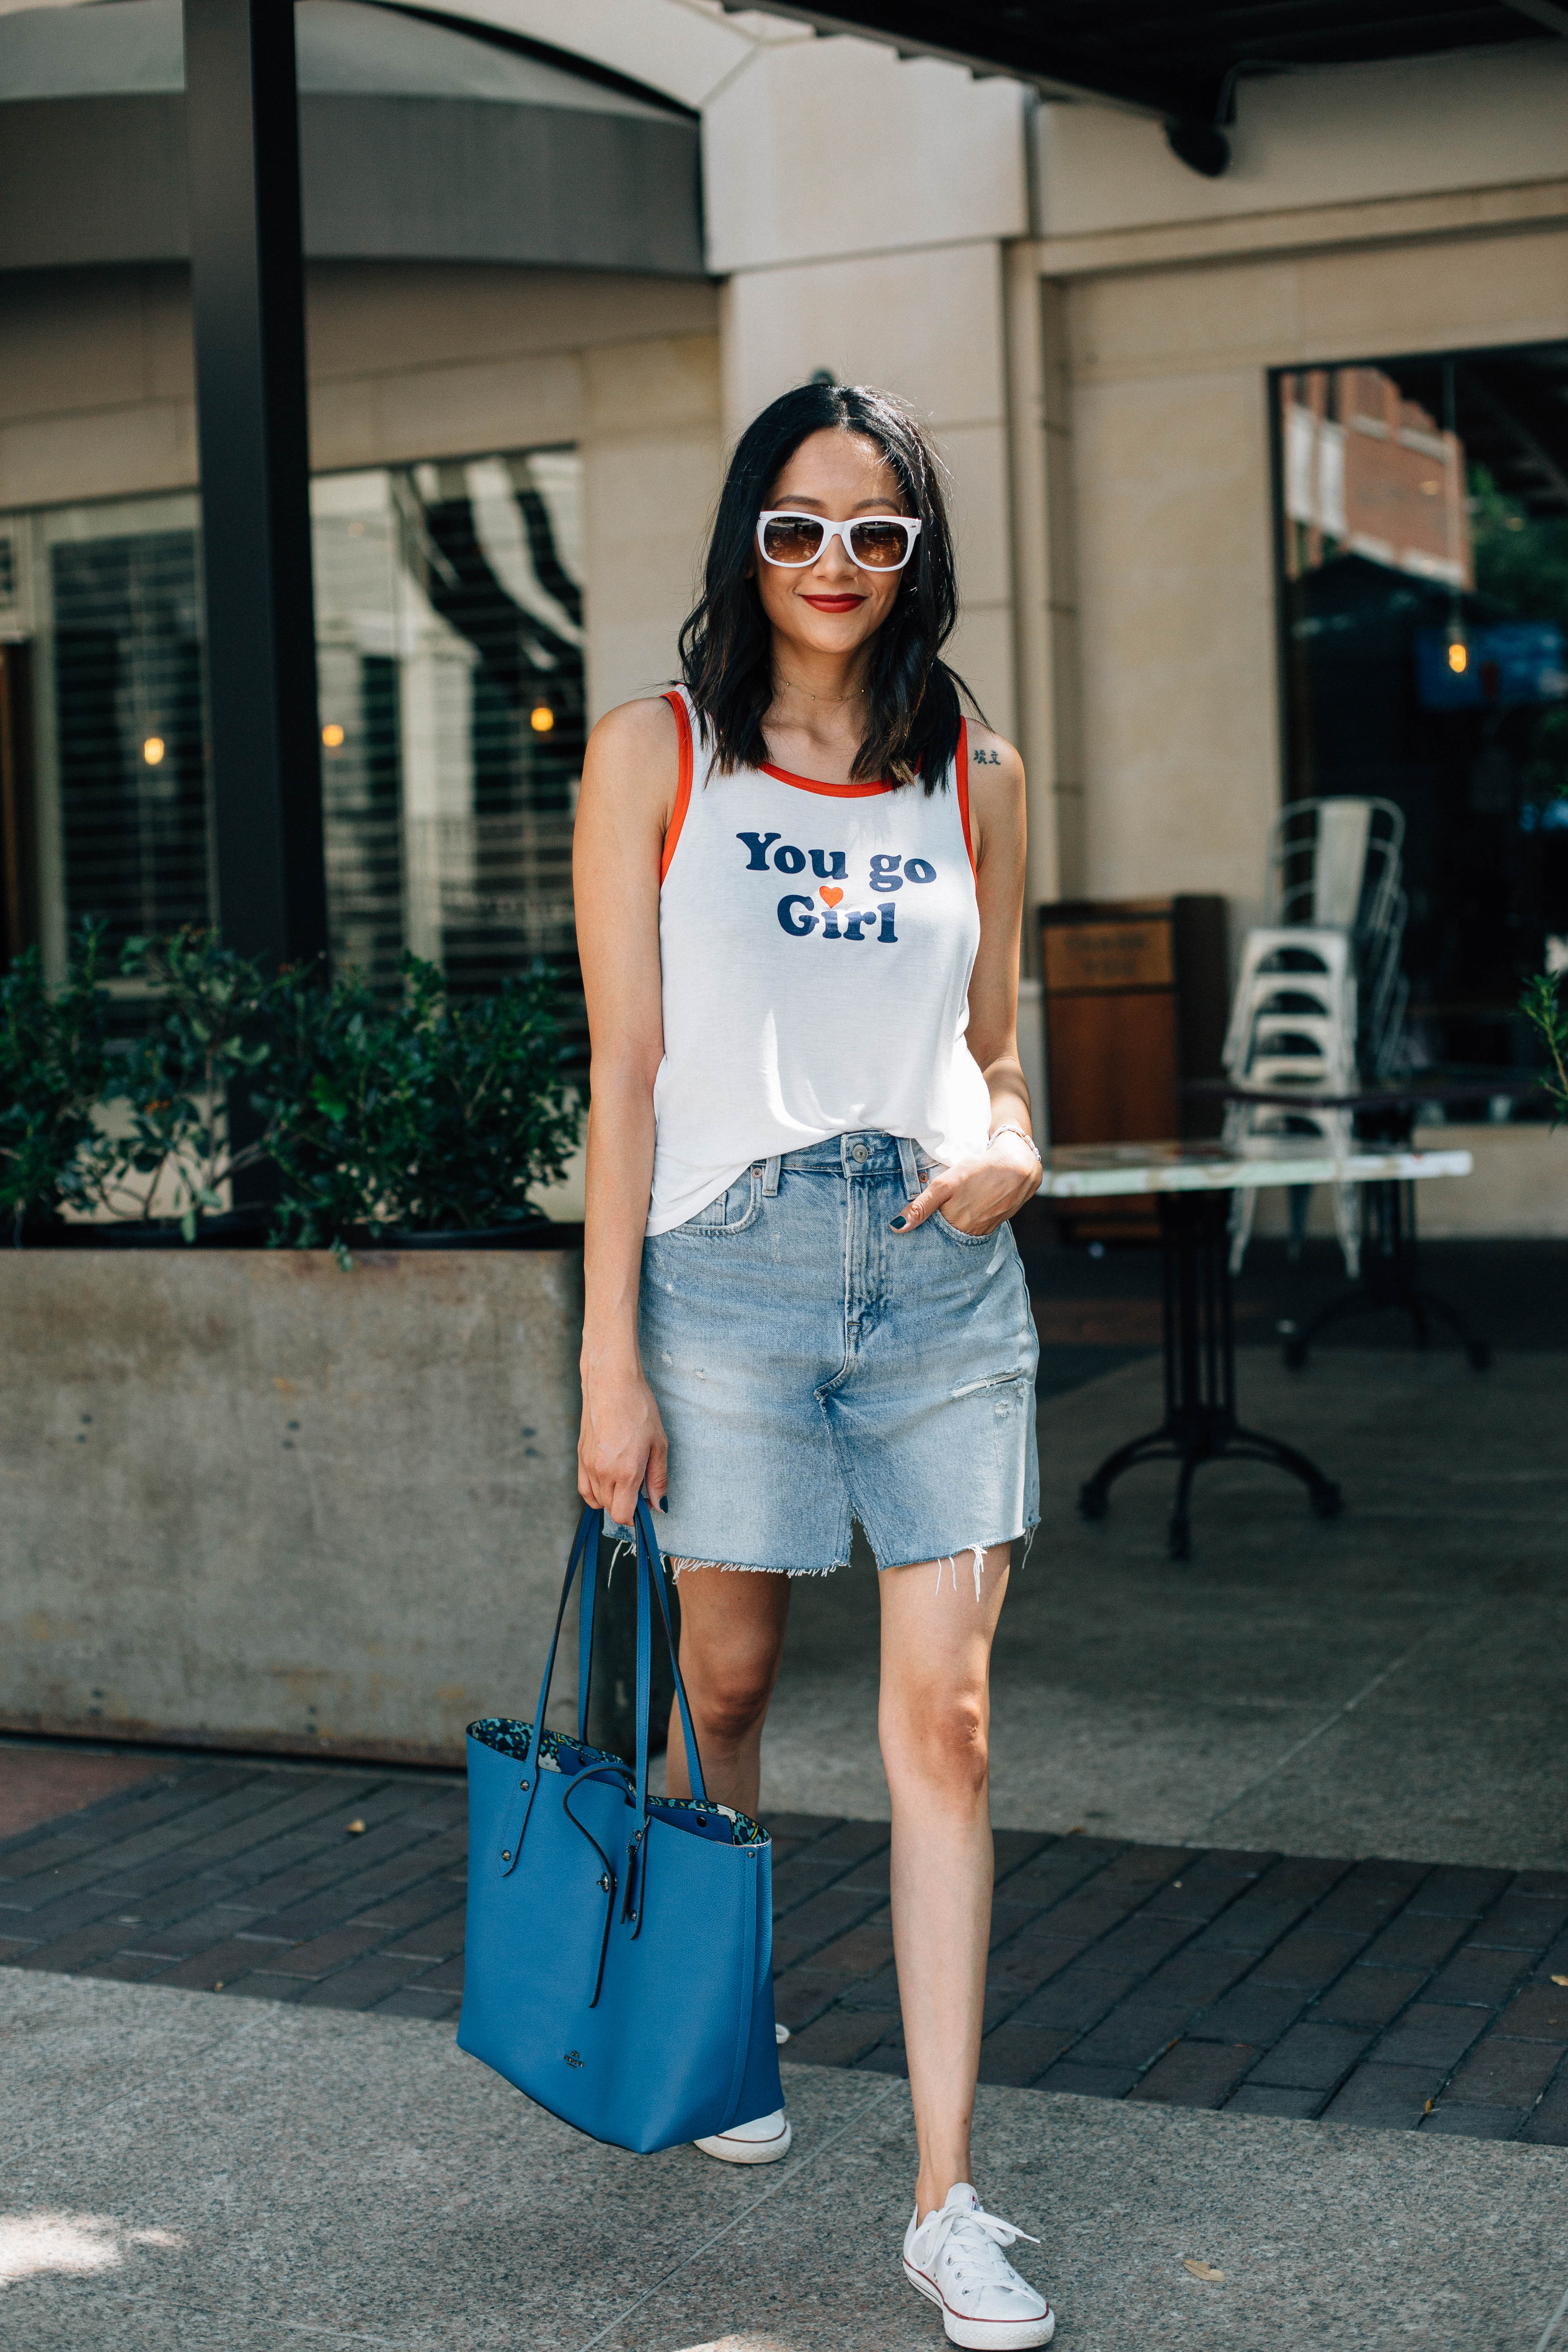 Lifestyle blogger Lilly Beltran of Daily Craving wearing a white printed tee and white sunglasses